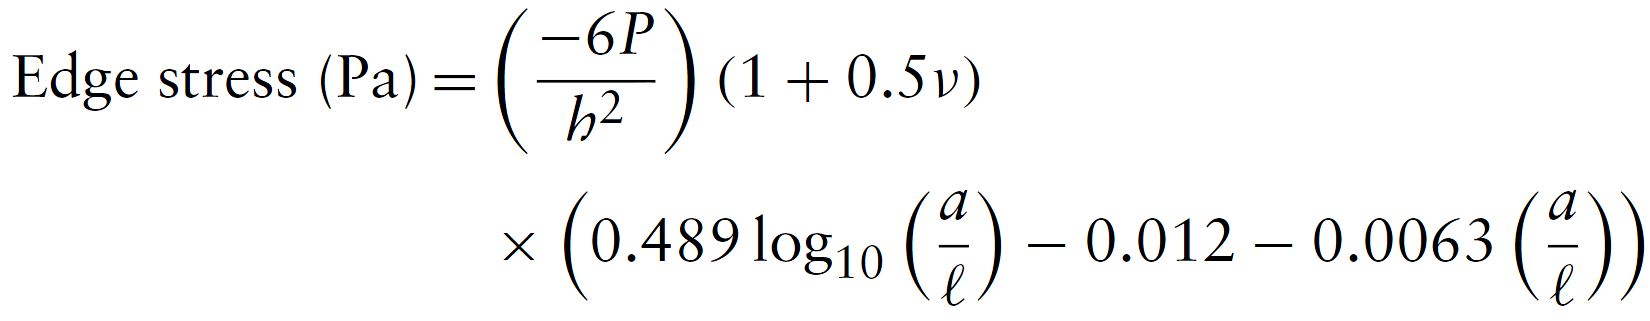 Westergaard - Edge Load Equation (Loseberg)